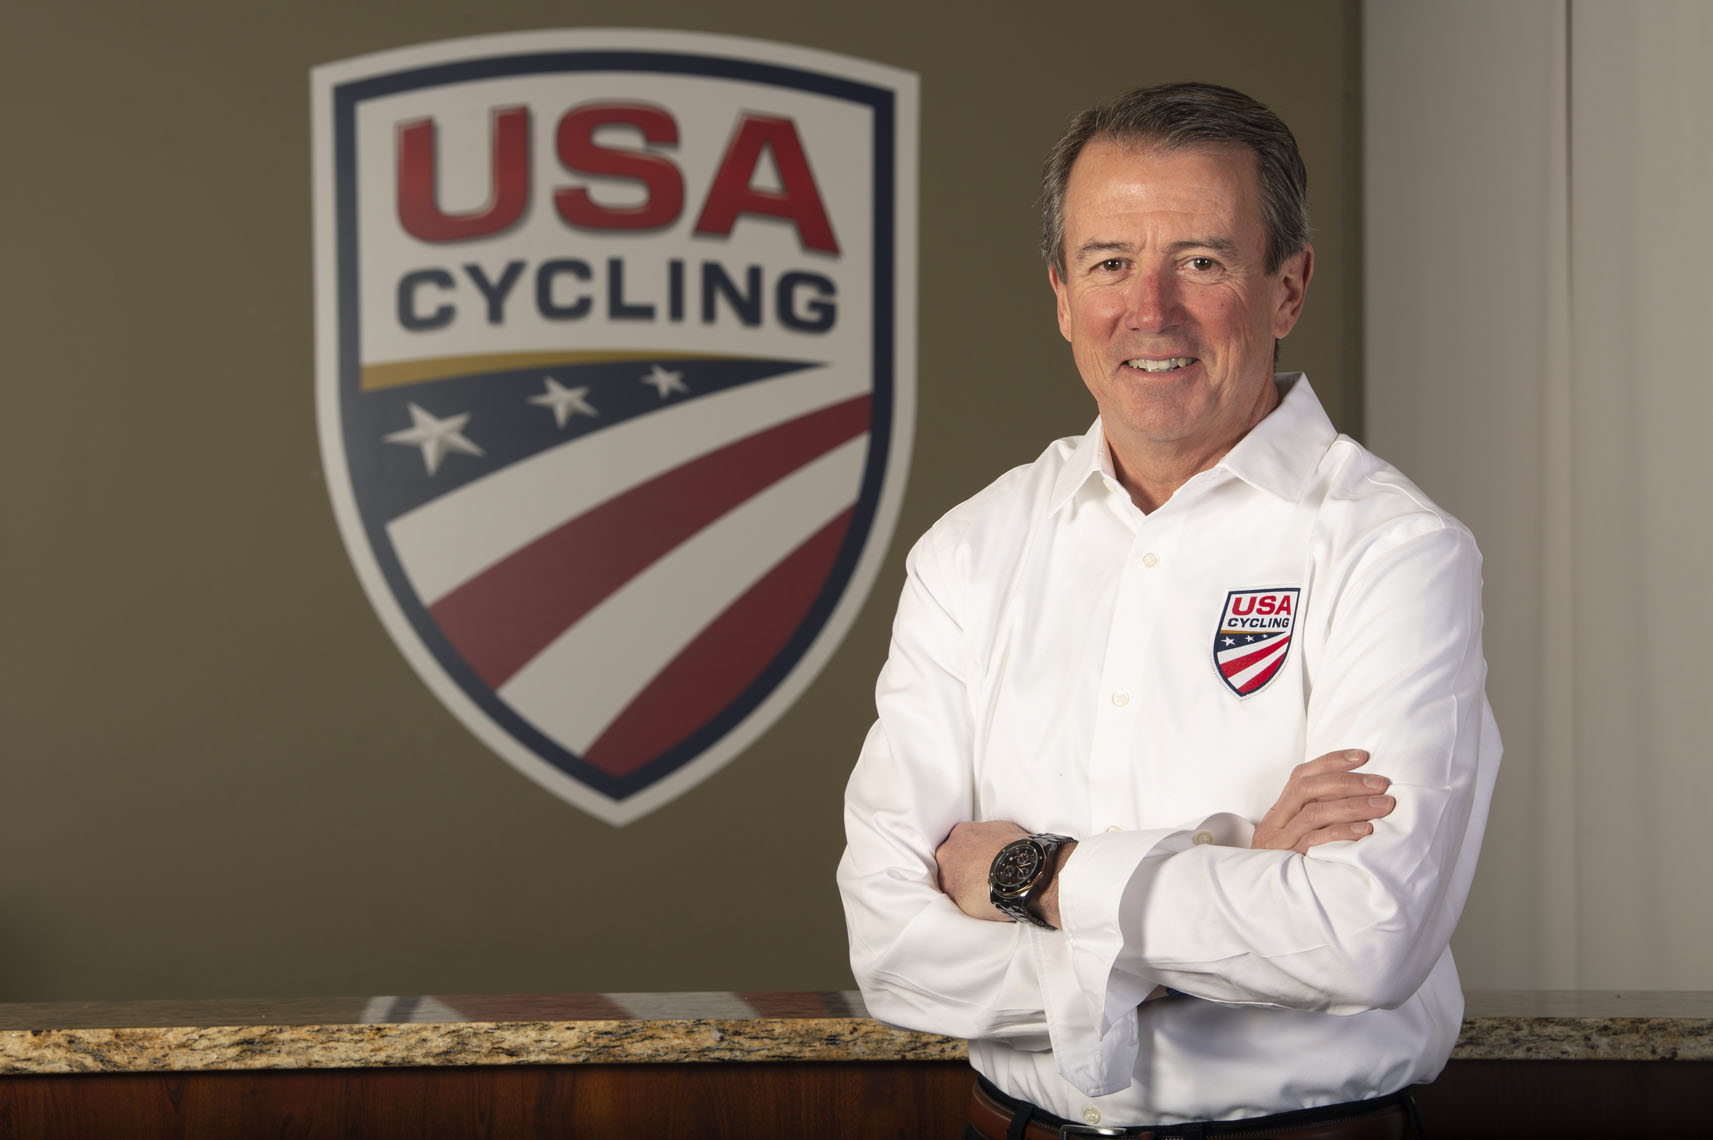 Rob DeMartini, USA Cycling CEO